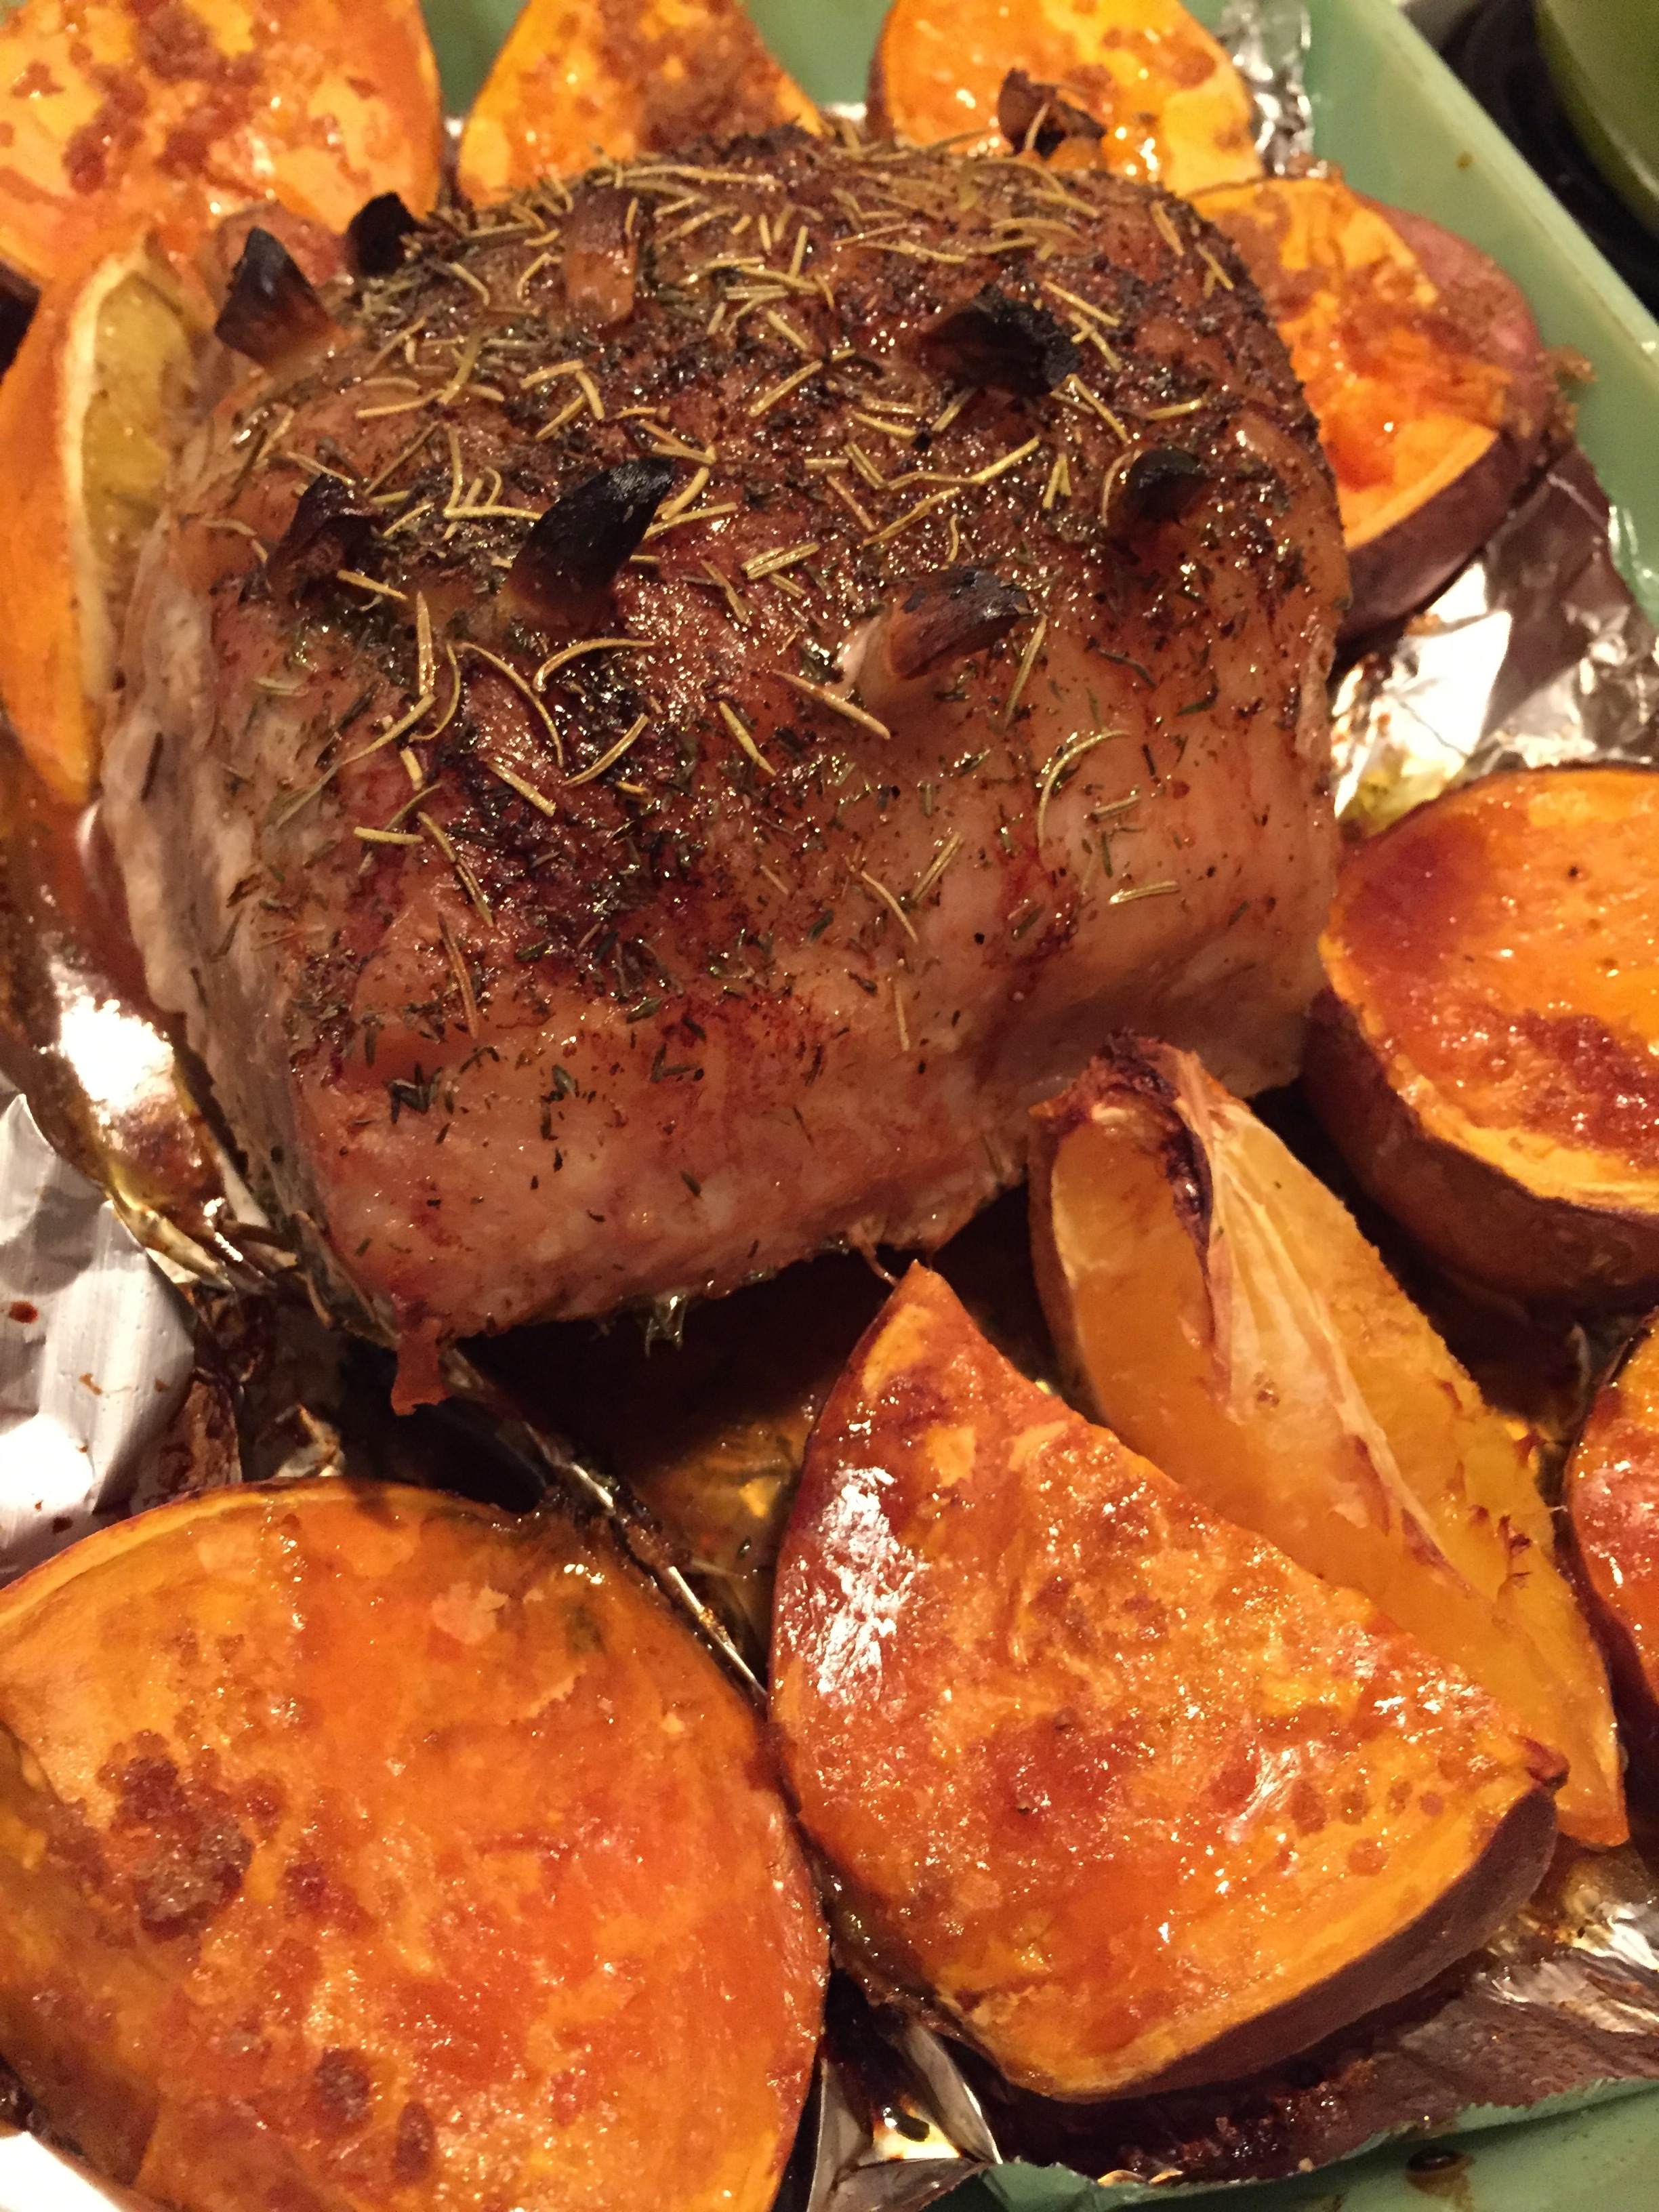 pork roast and brown sugar sweet potatoes, made in a defiant act of cooking for One